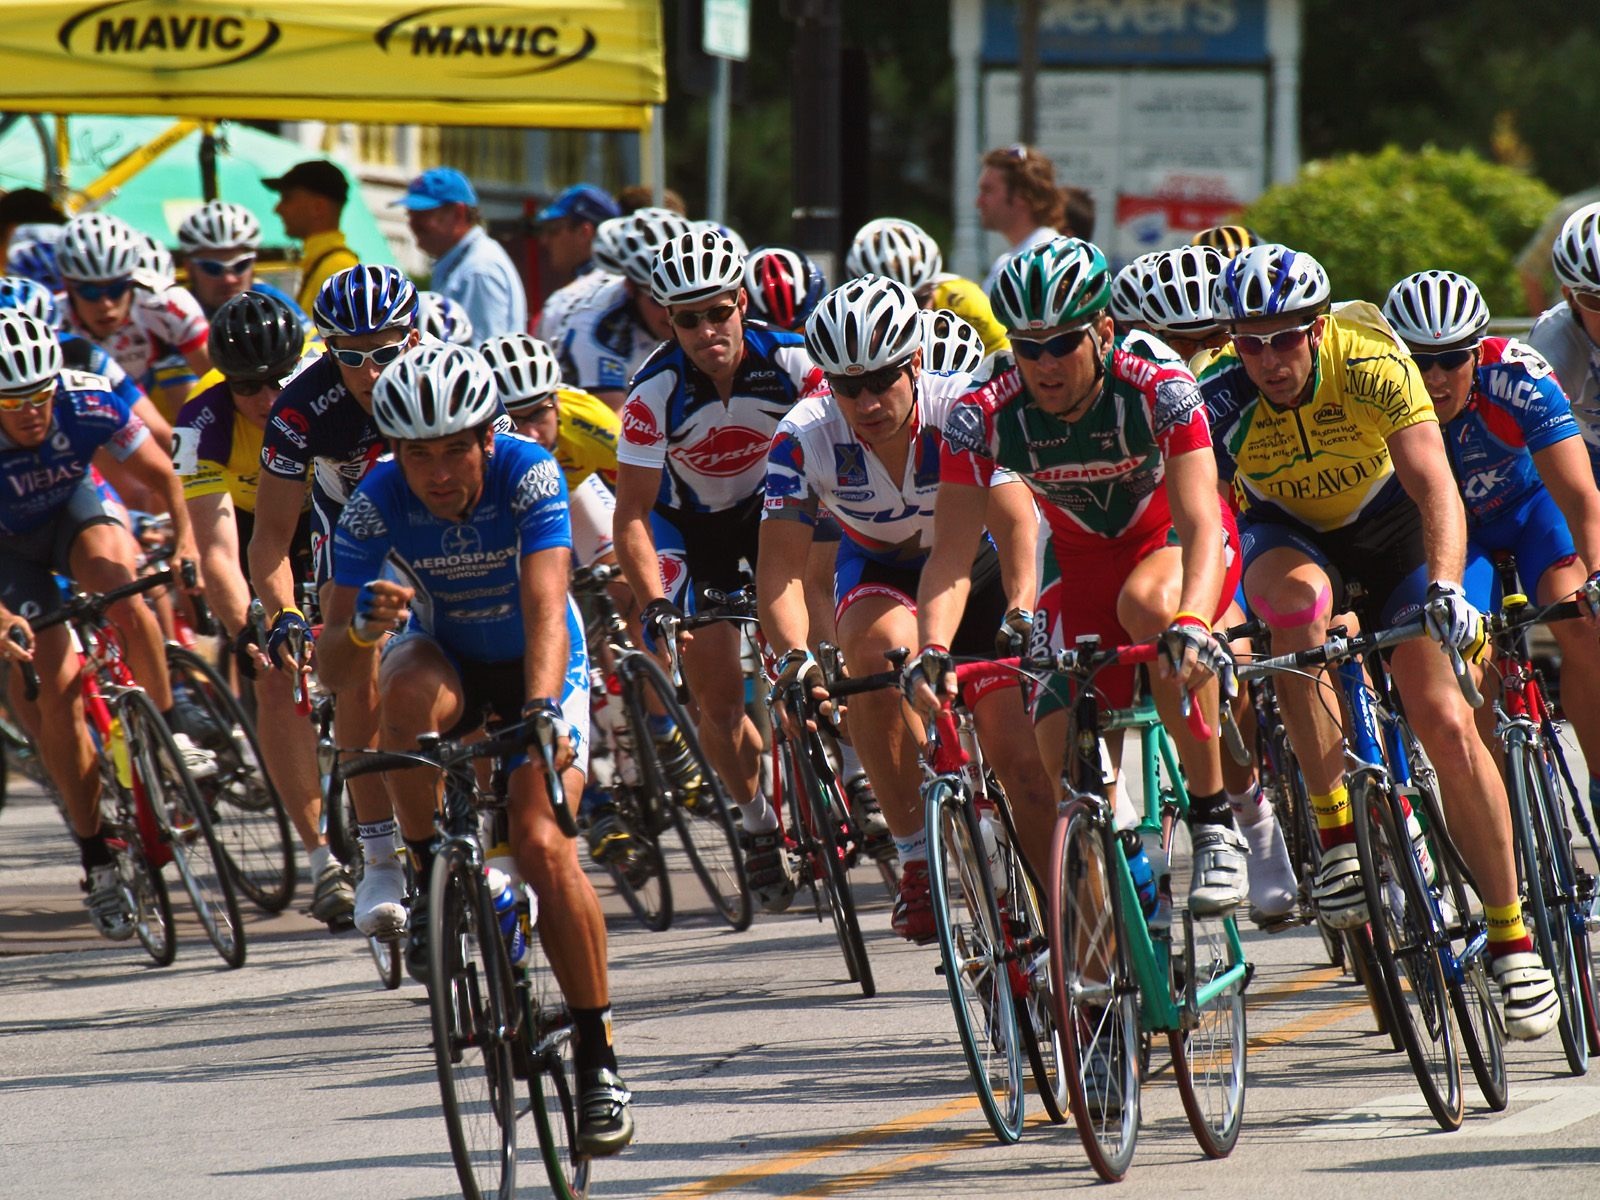 Professional Bicycle Racing Chicago Illinois   Sports Photography 1600x1200